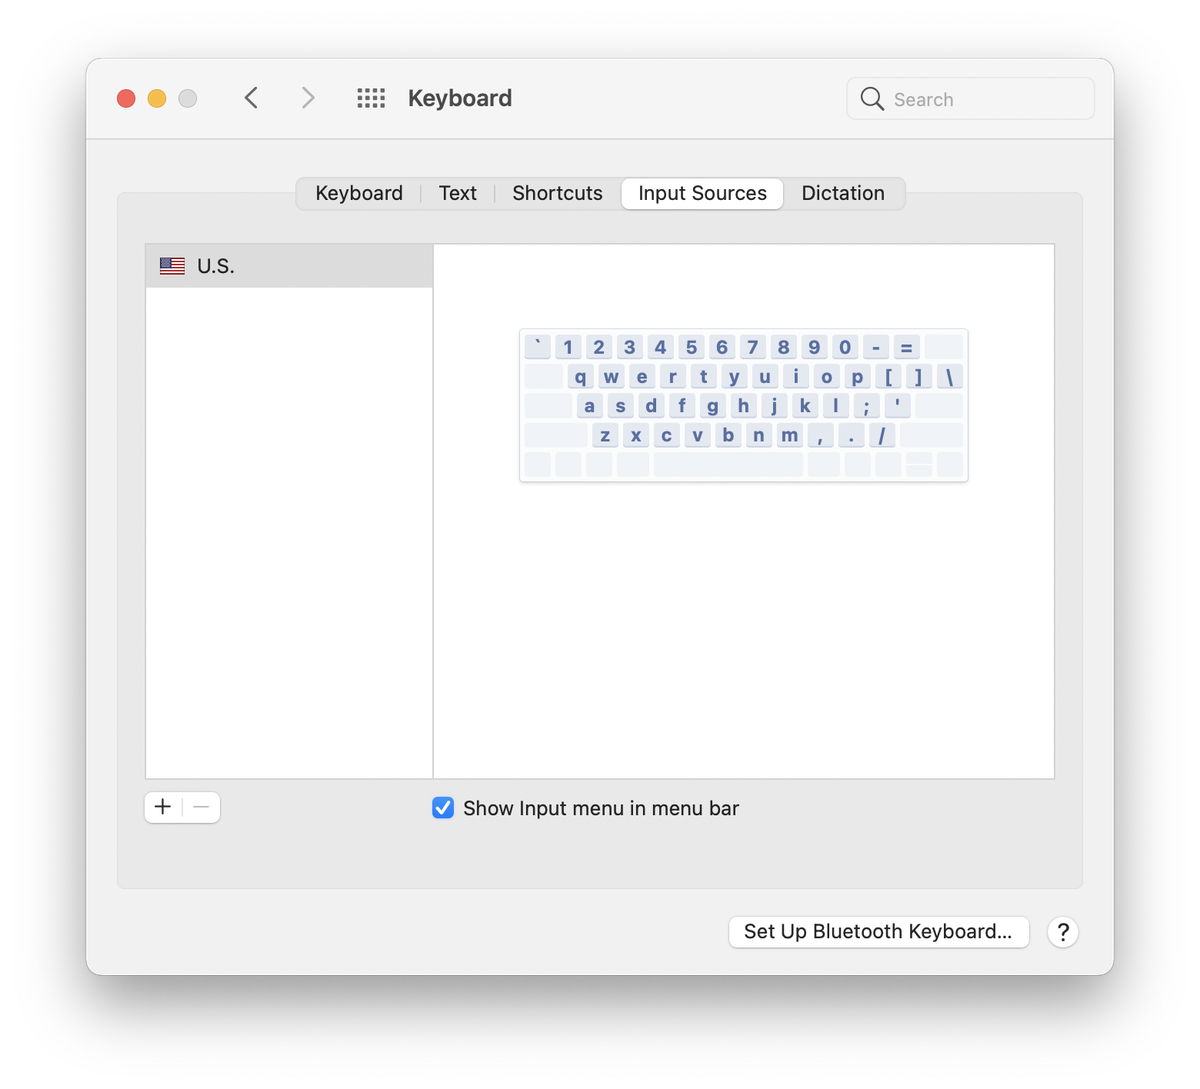 To get the Input Menu icon, you need to enable it in your Keyboard preferences.